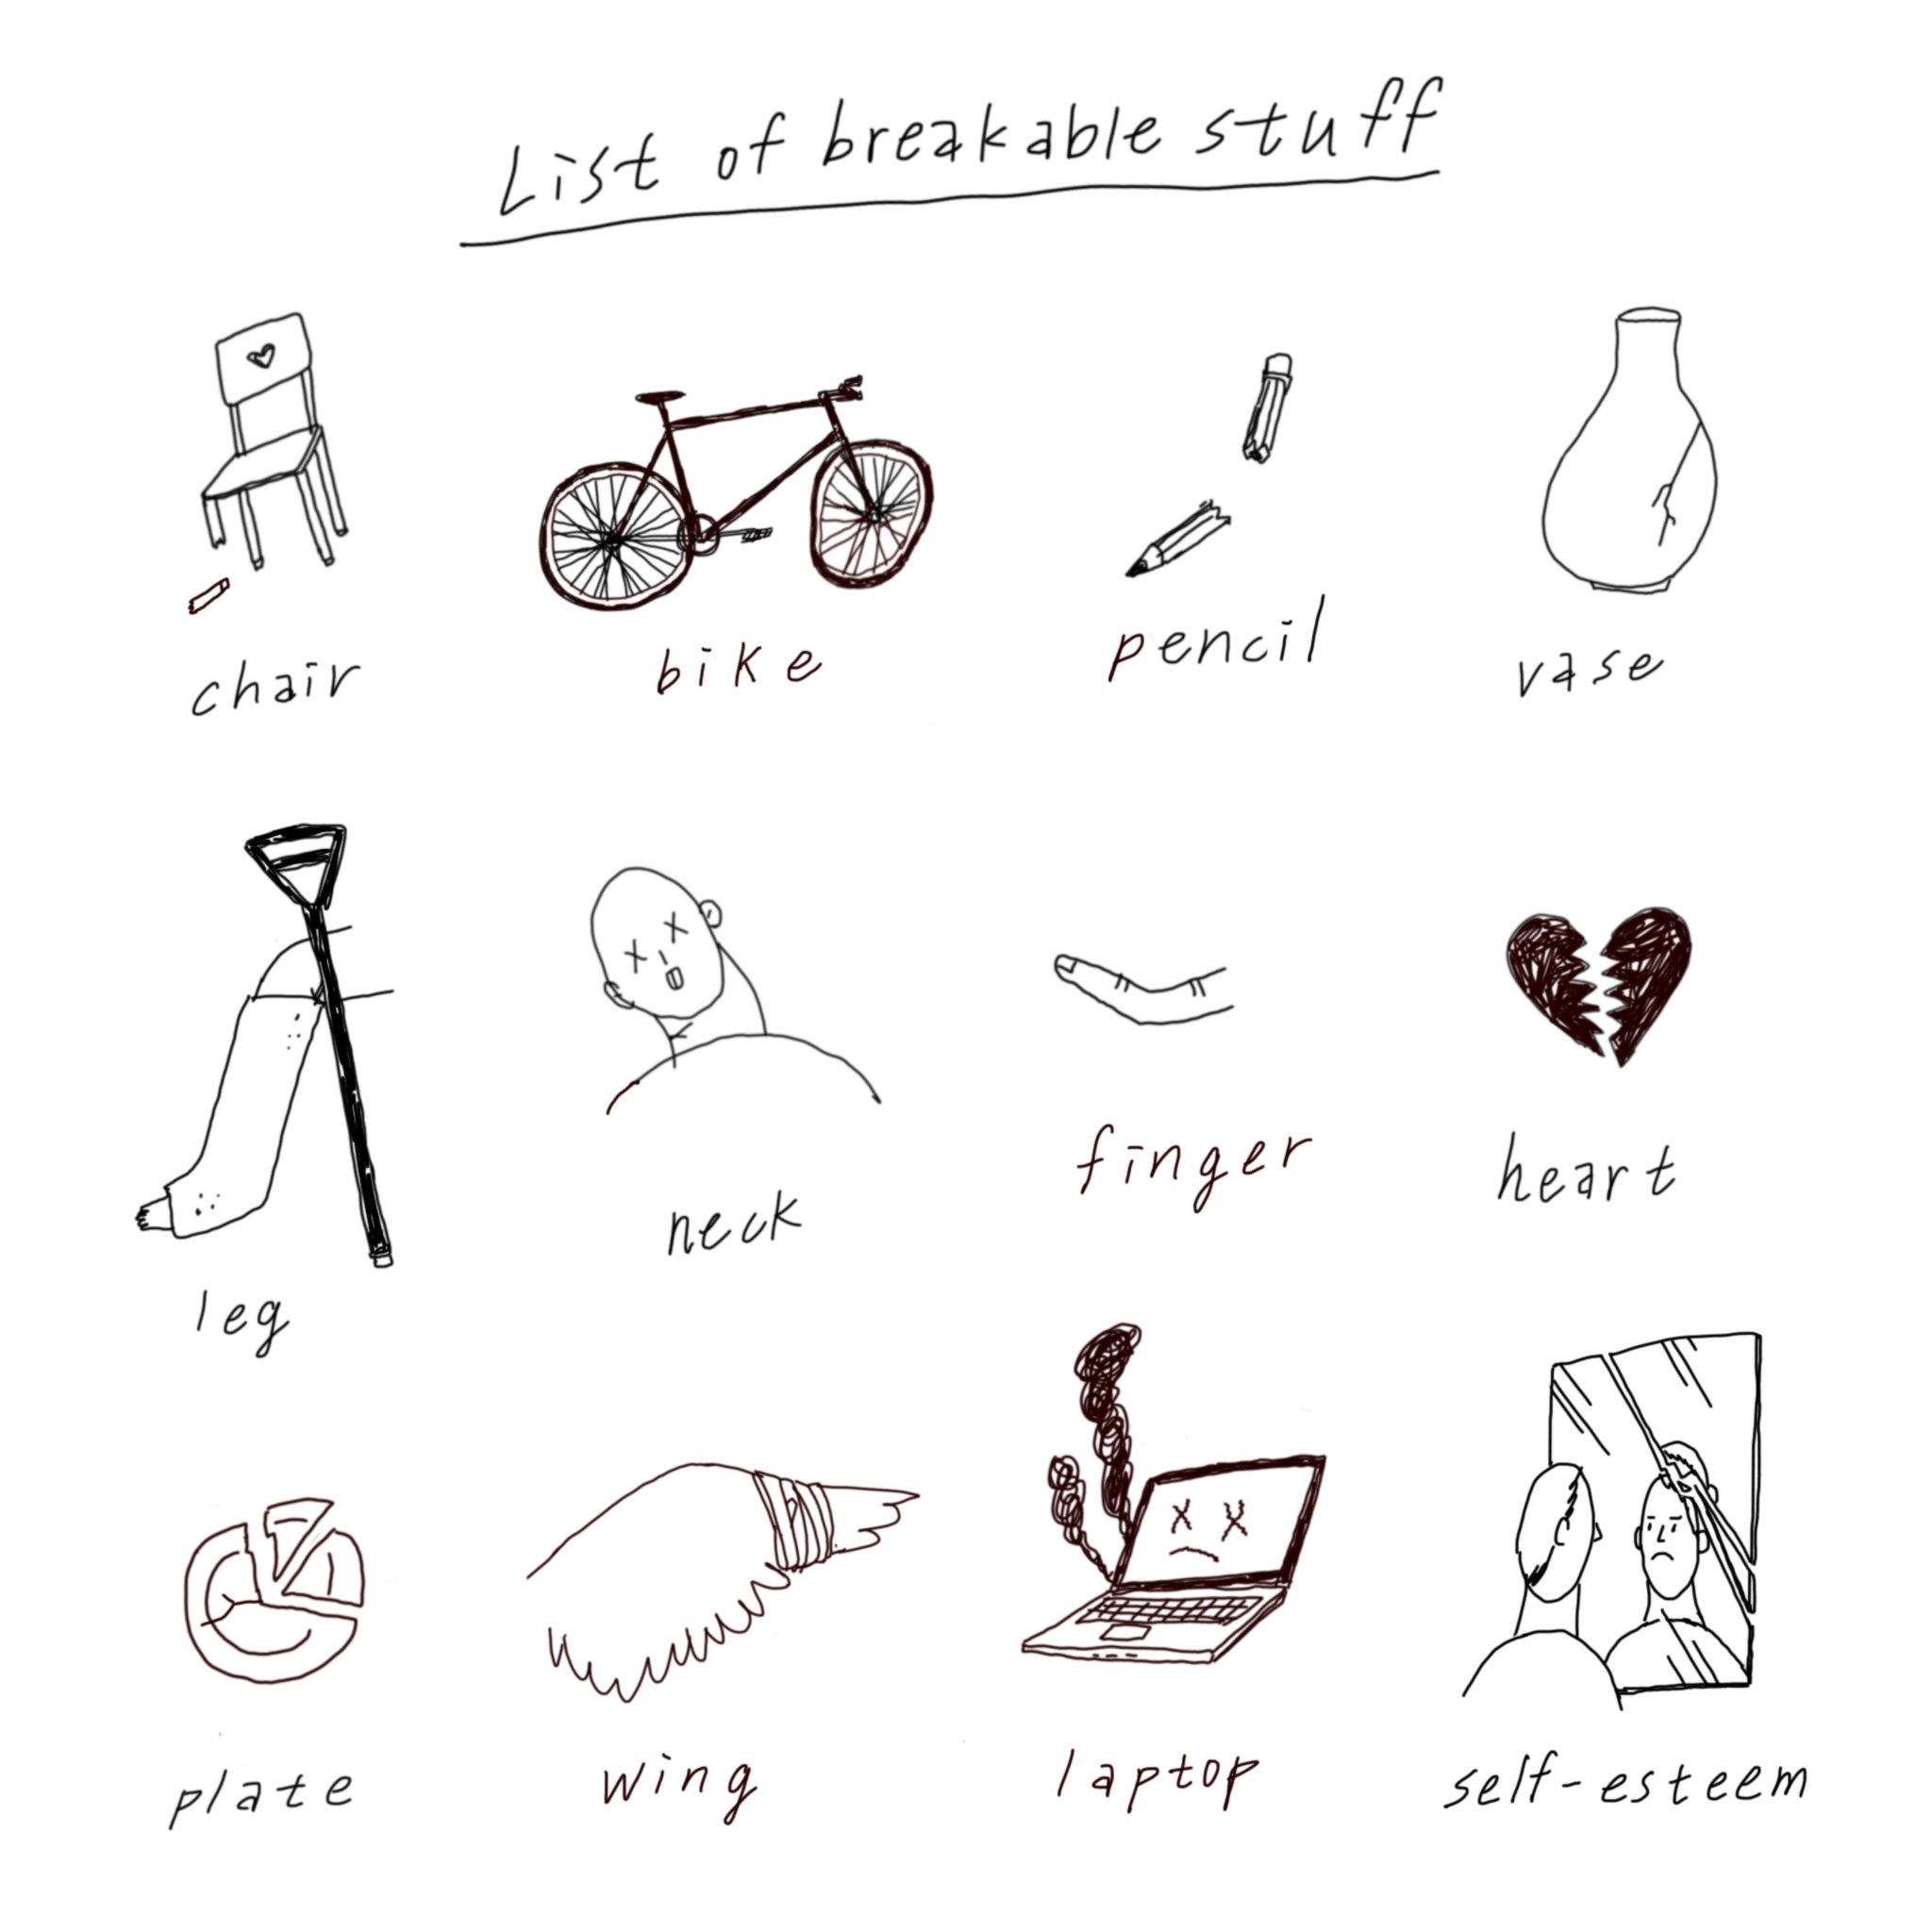 List of Breakable Stuff